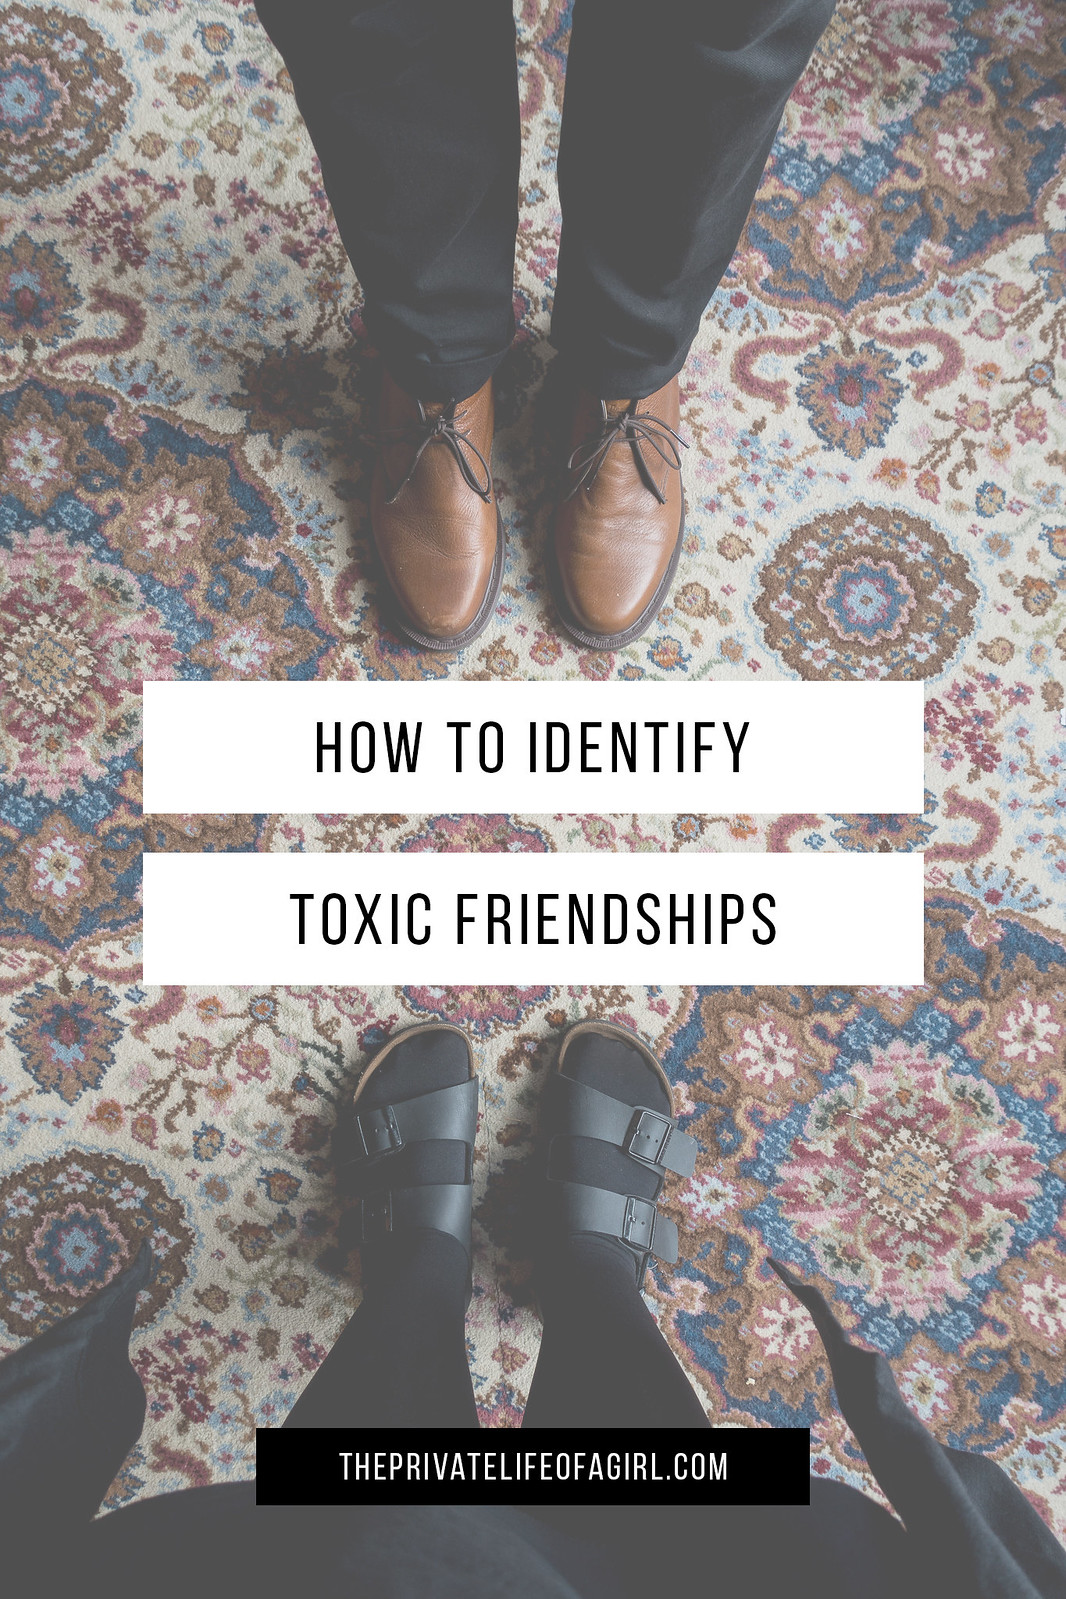 How To Identify Toxic Friendships